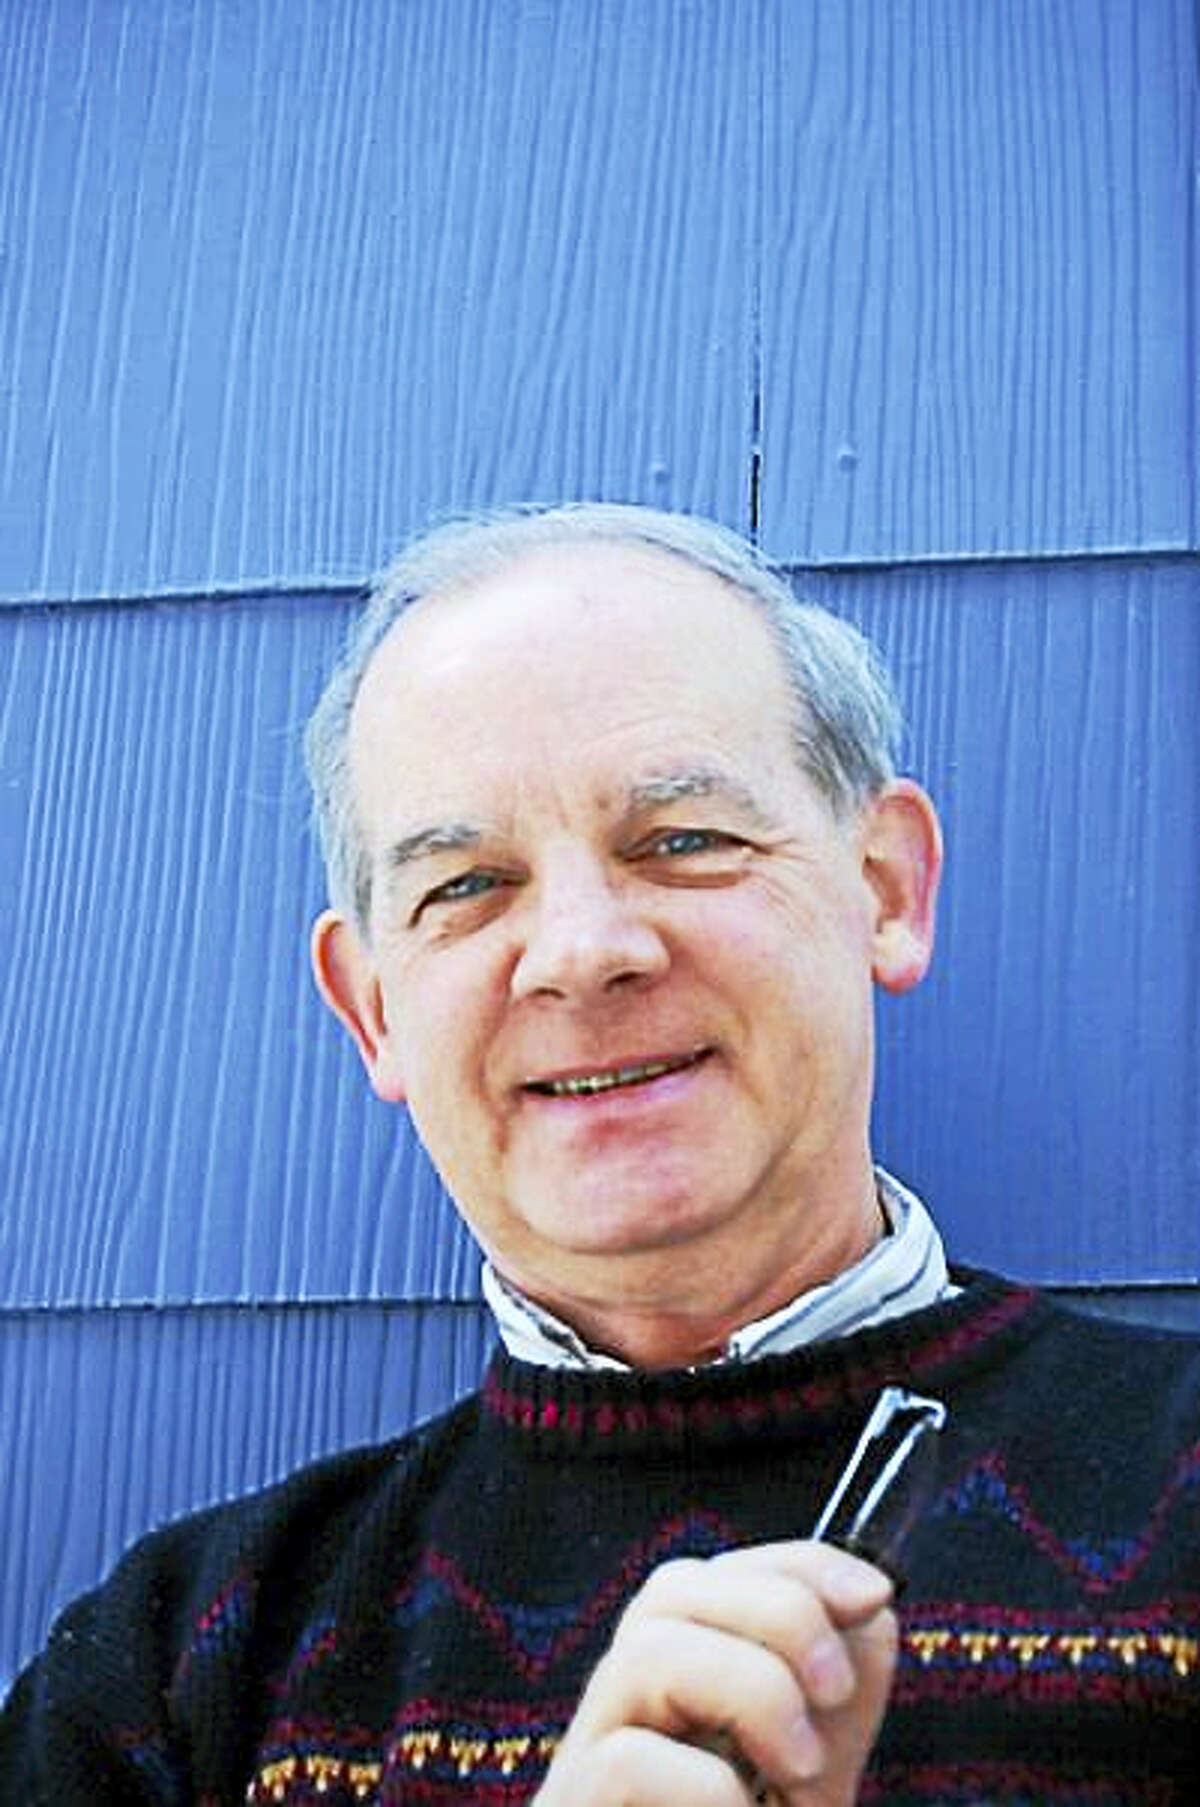 Author Jack Sheedy is the featured writer at the next installment of SpeakEasy poetry series at the Performance HUB in Torrington on Aug. 6.